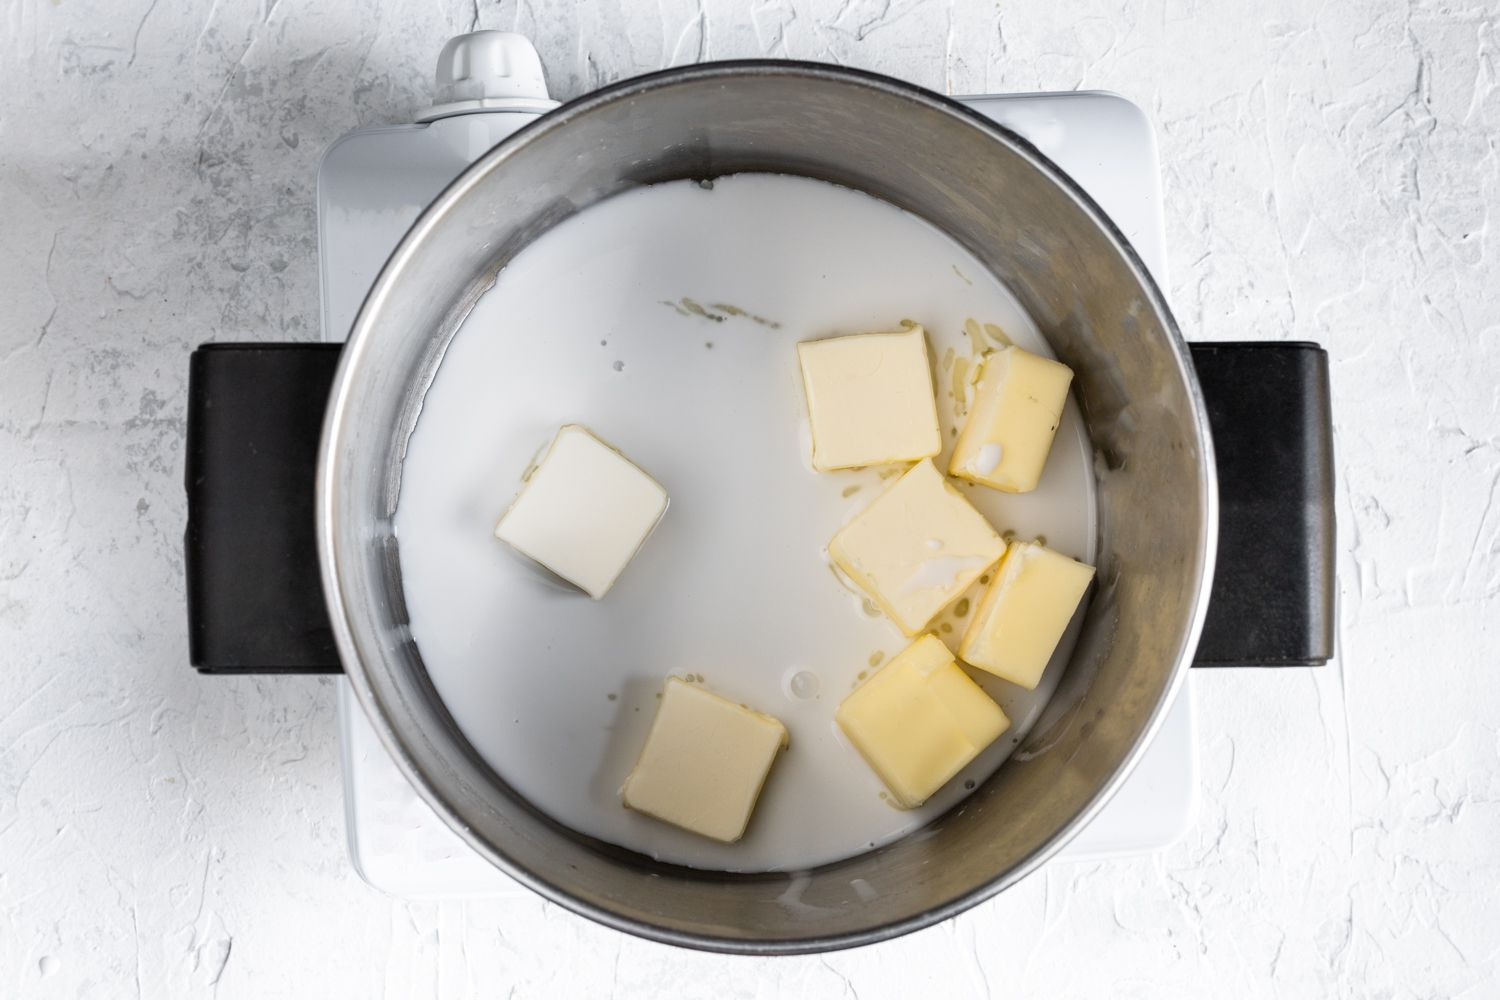 Milk and butter added to the pan used to boil the potatoes